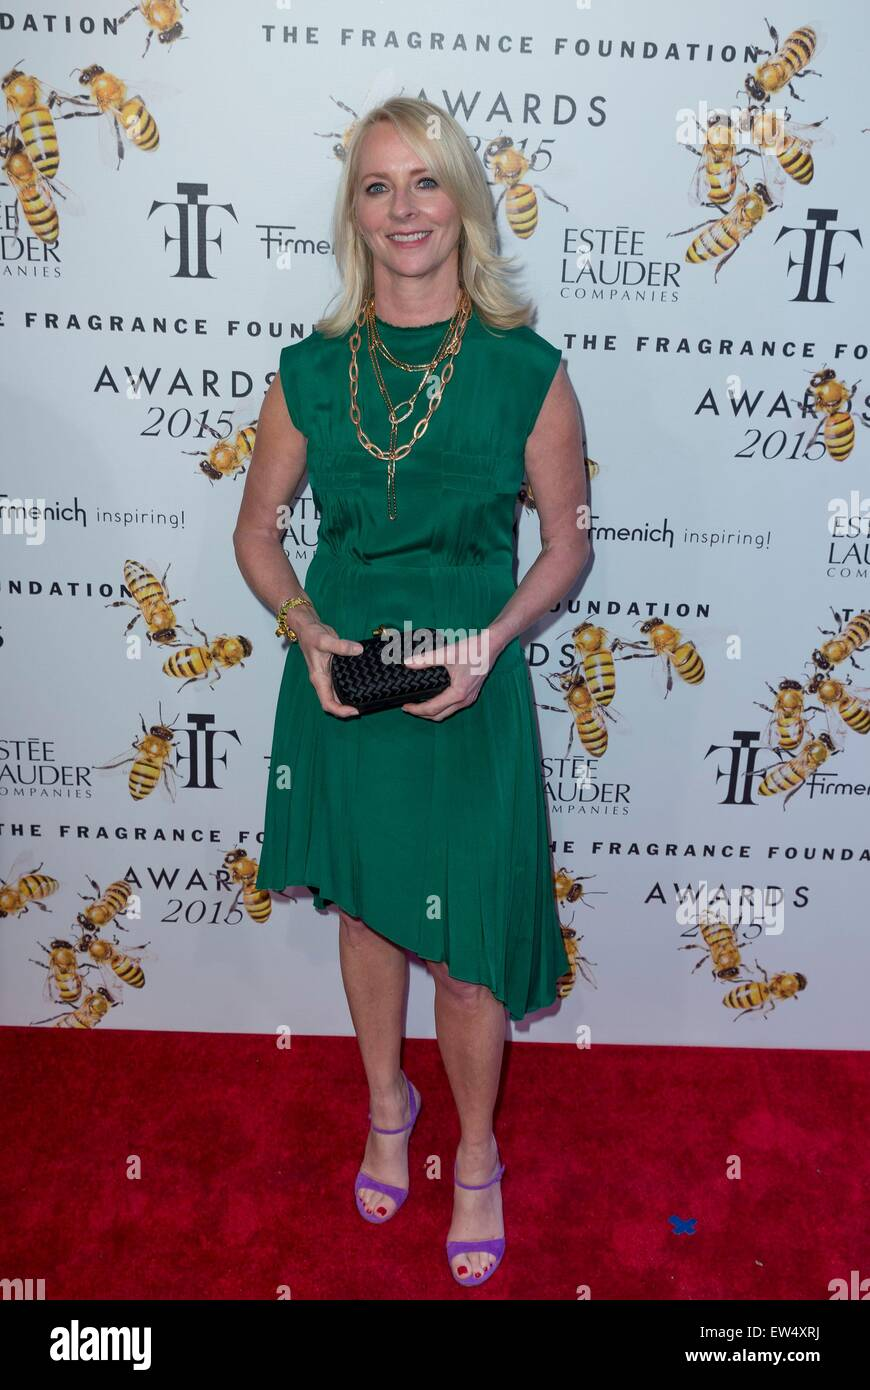 New York, NY, USA. 17th June, 2015. Linda Wells at arrivals for The Fragrance Foundation Awards, Alice Tully Hall - Stock Image